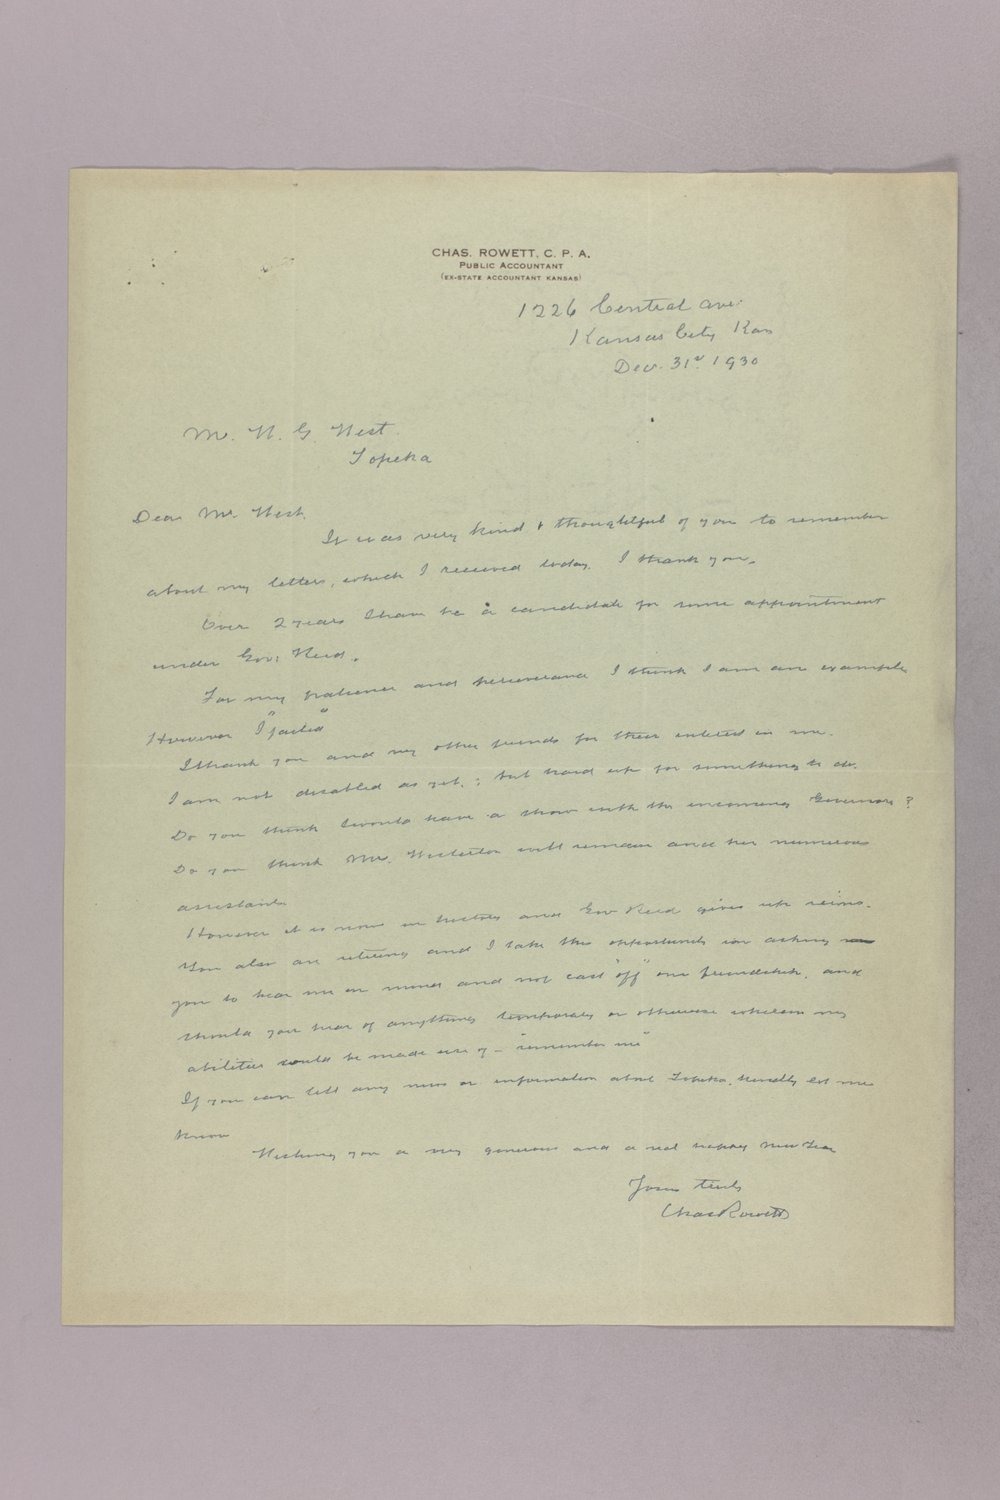 Governor Clyde M. Reed correspondence, State Accountant - 1